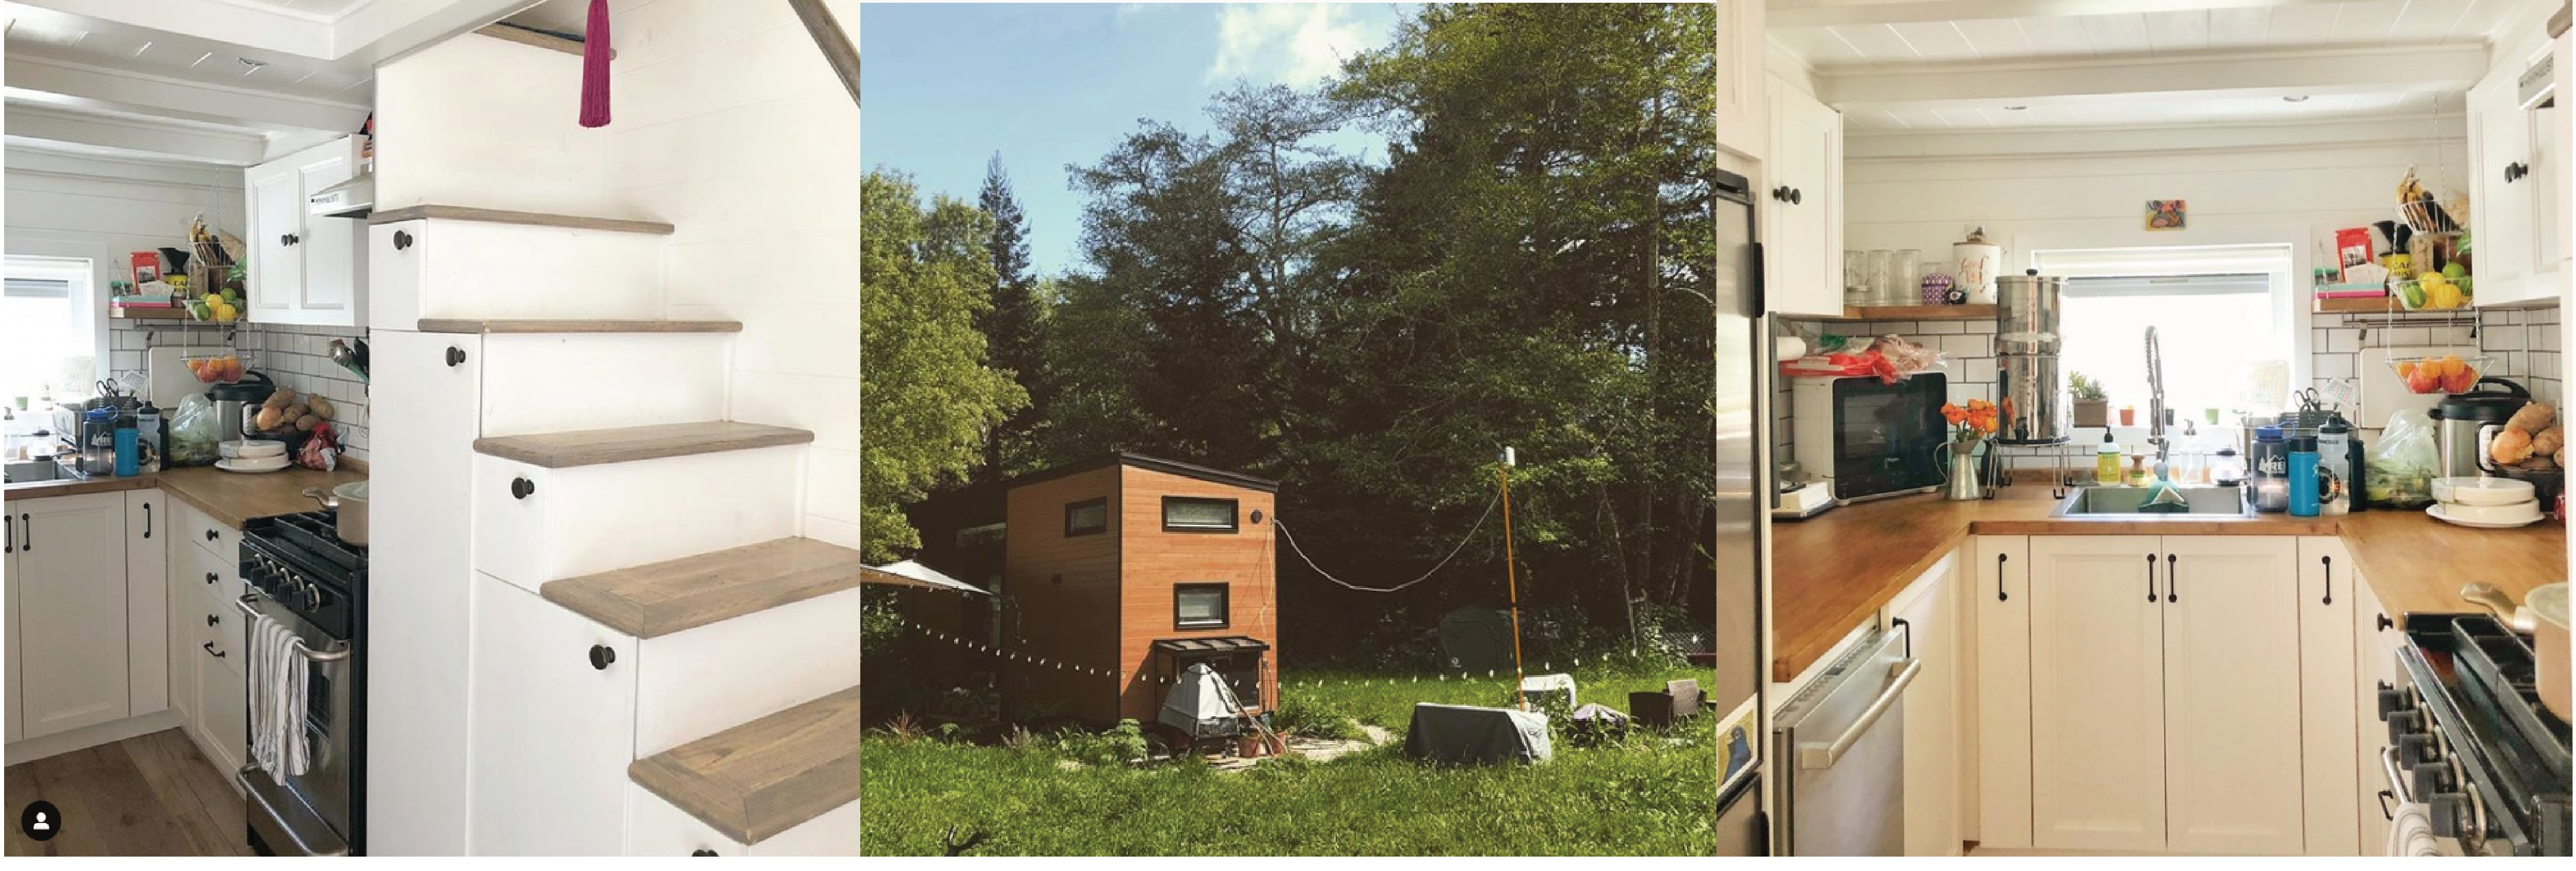 Images from The Tiny Casita Instagram account